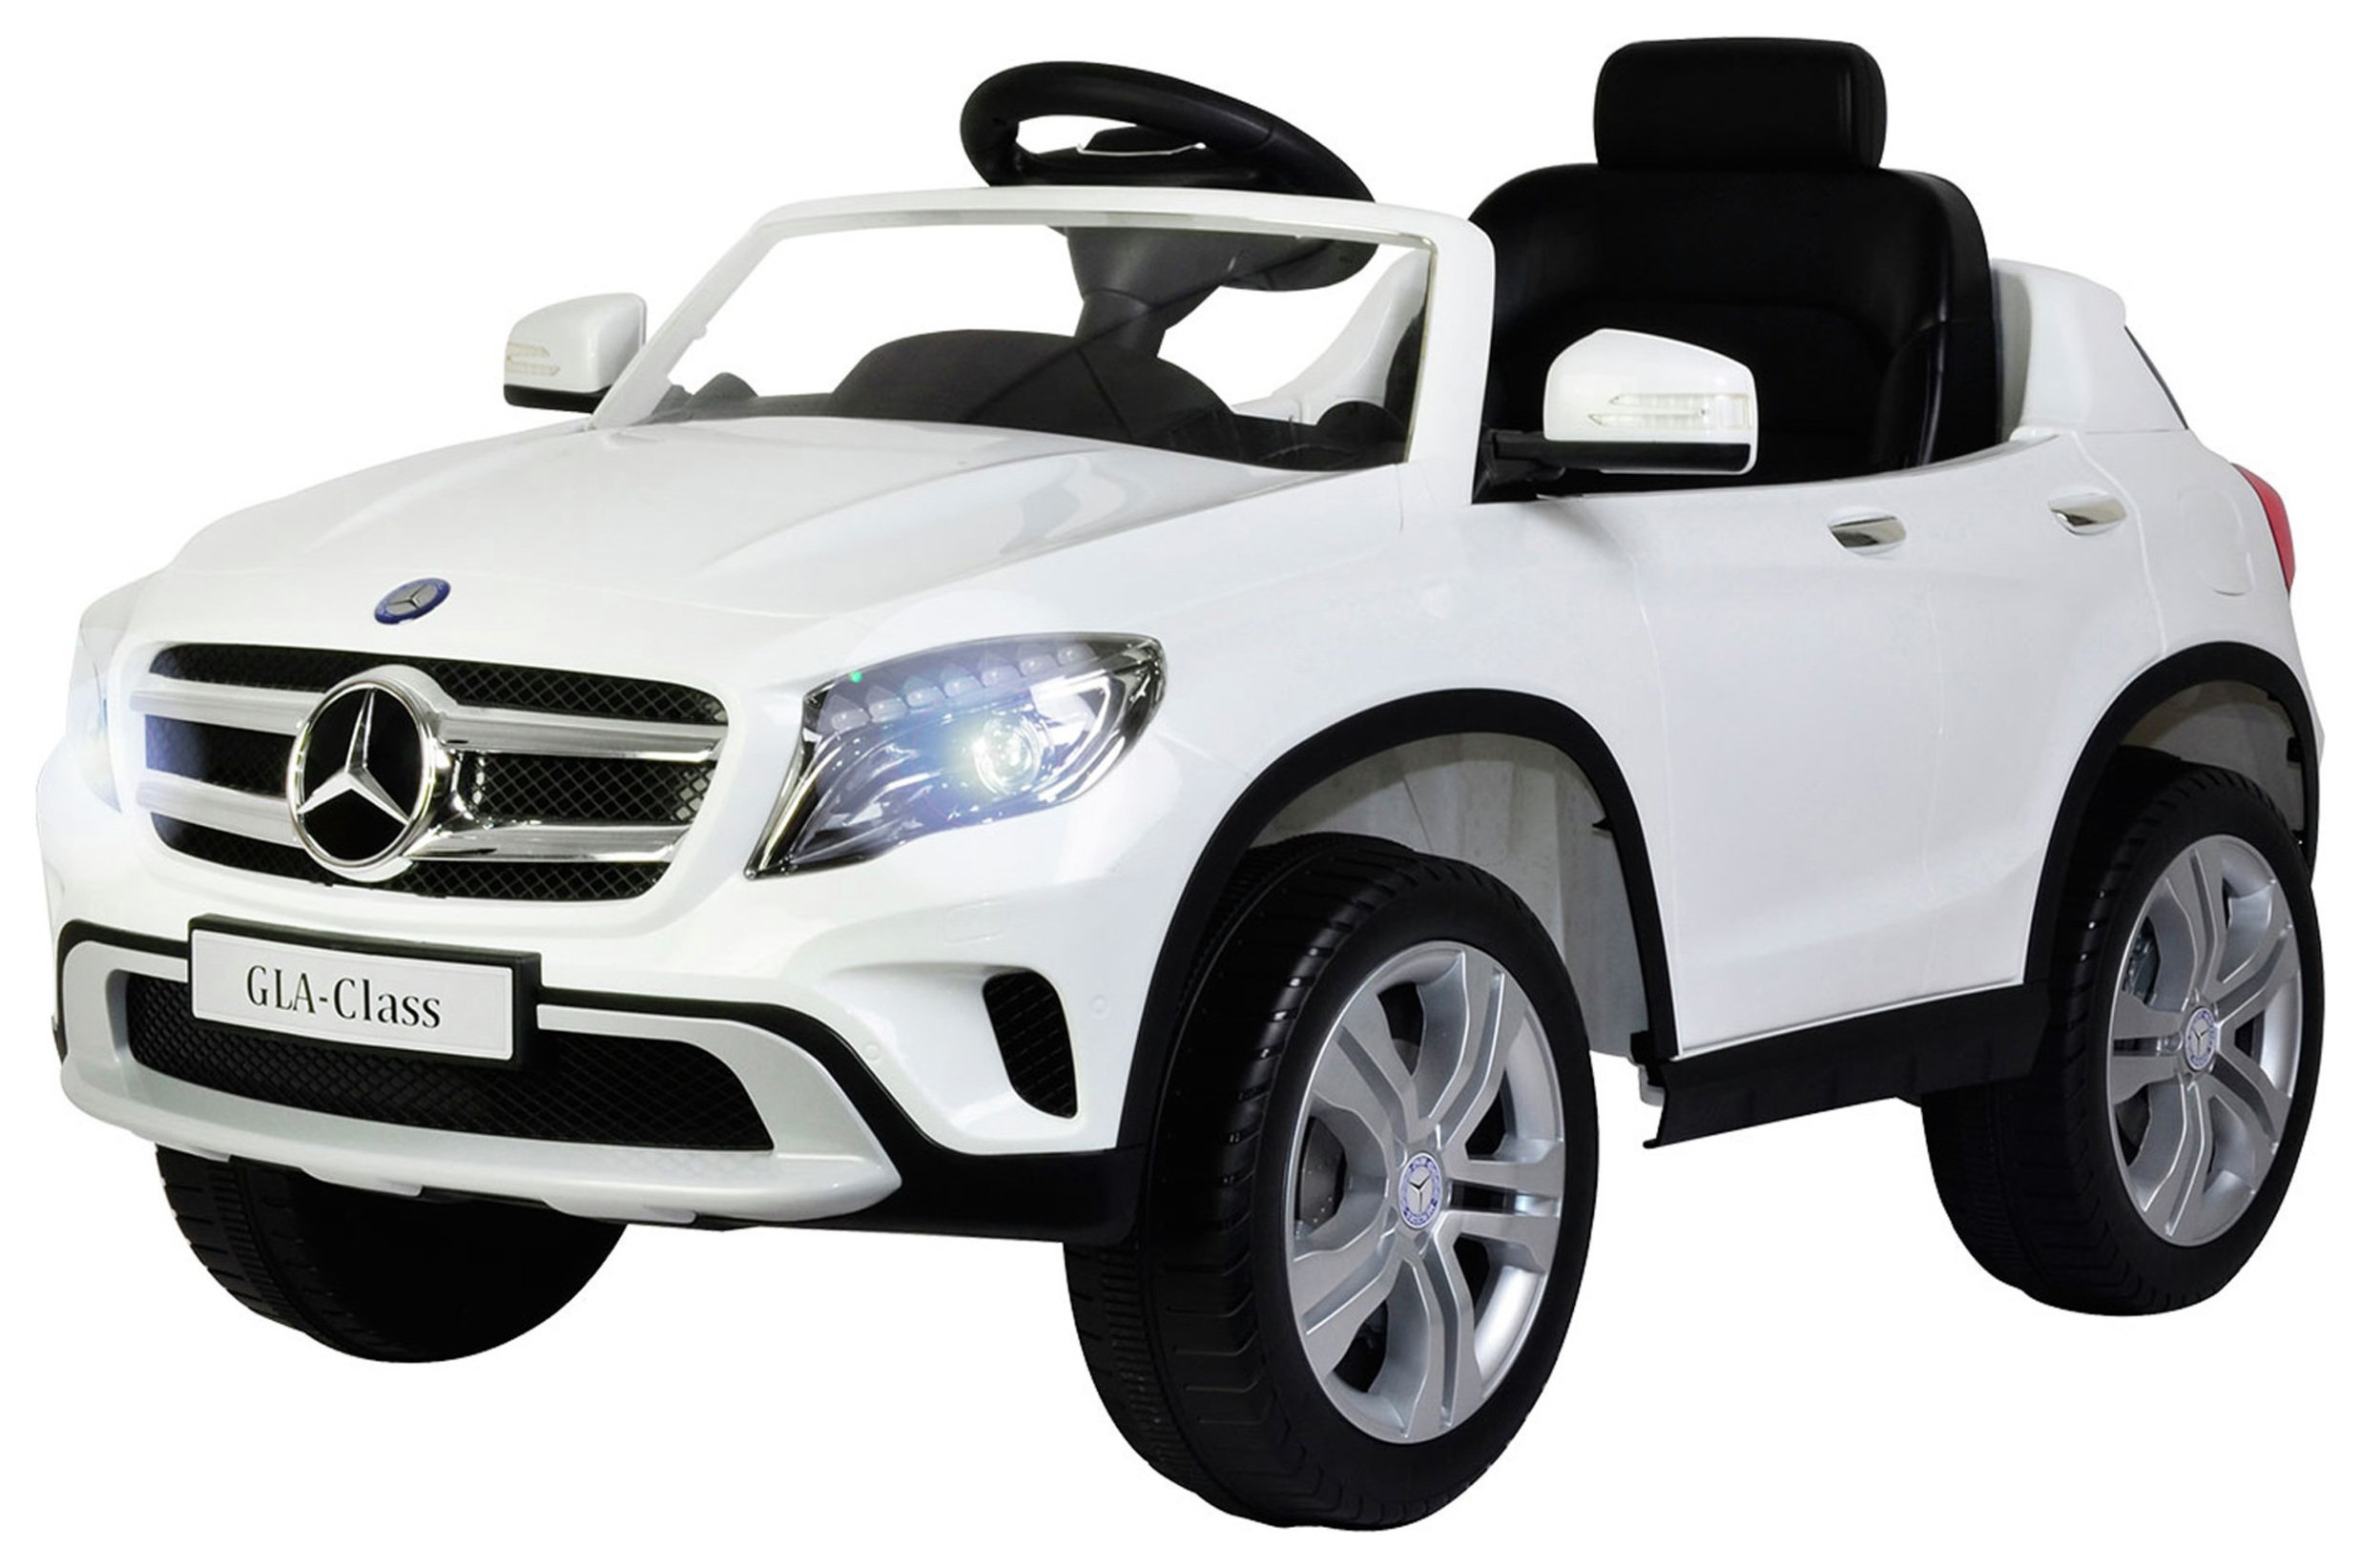 Image of Toyrific Mercedes-Benz GLA 12v Electric Ride On.